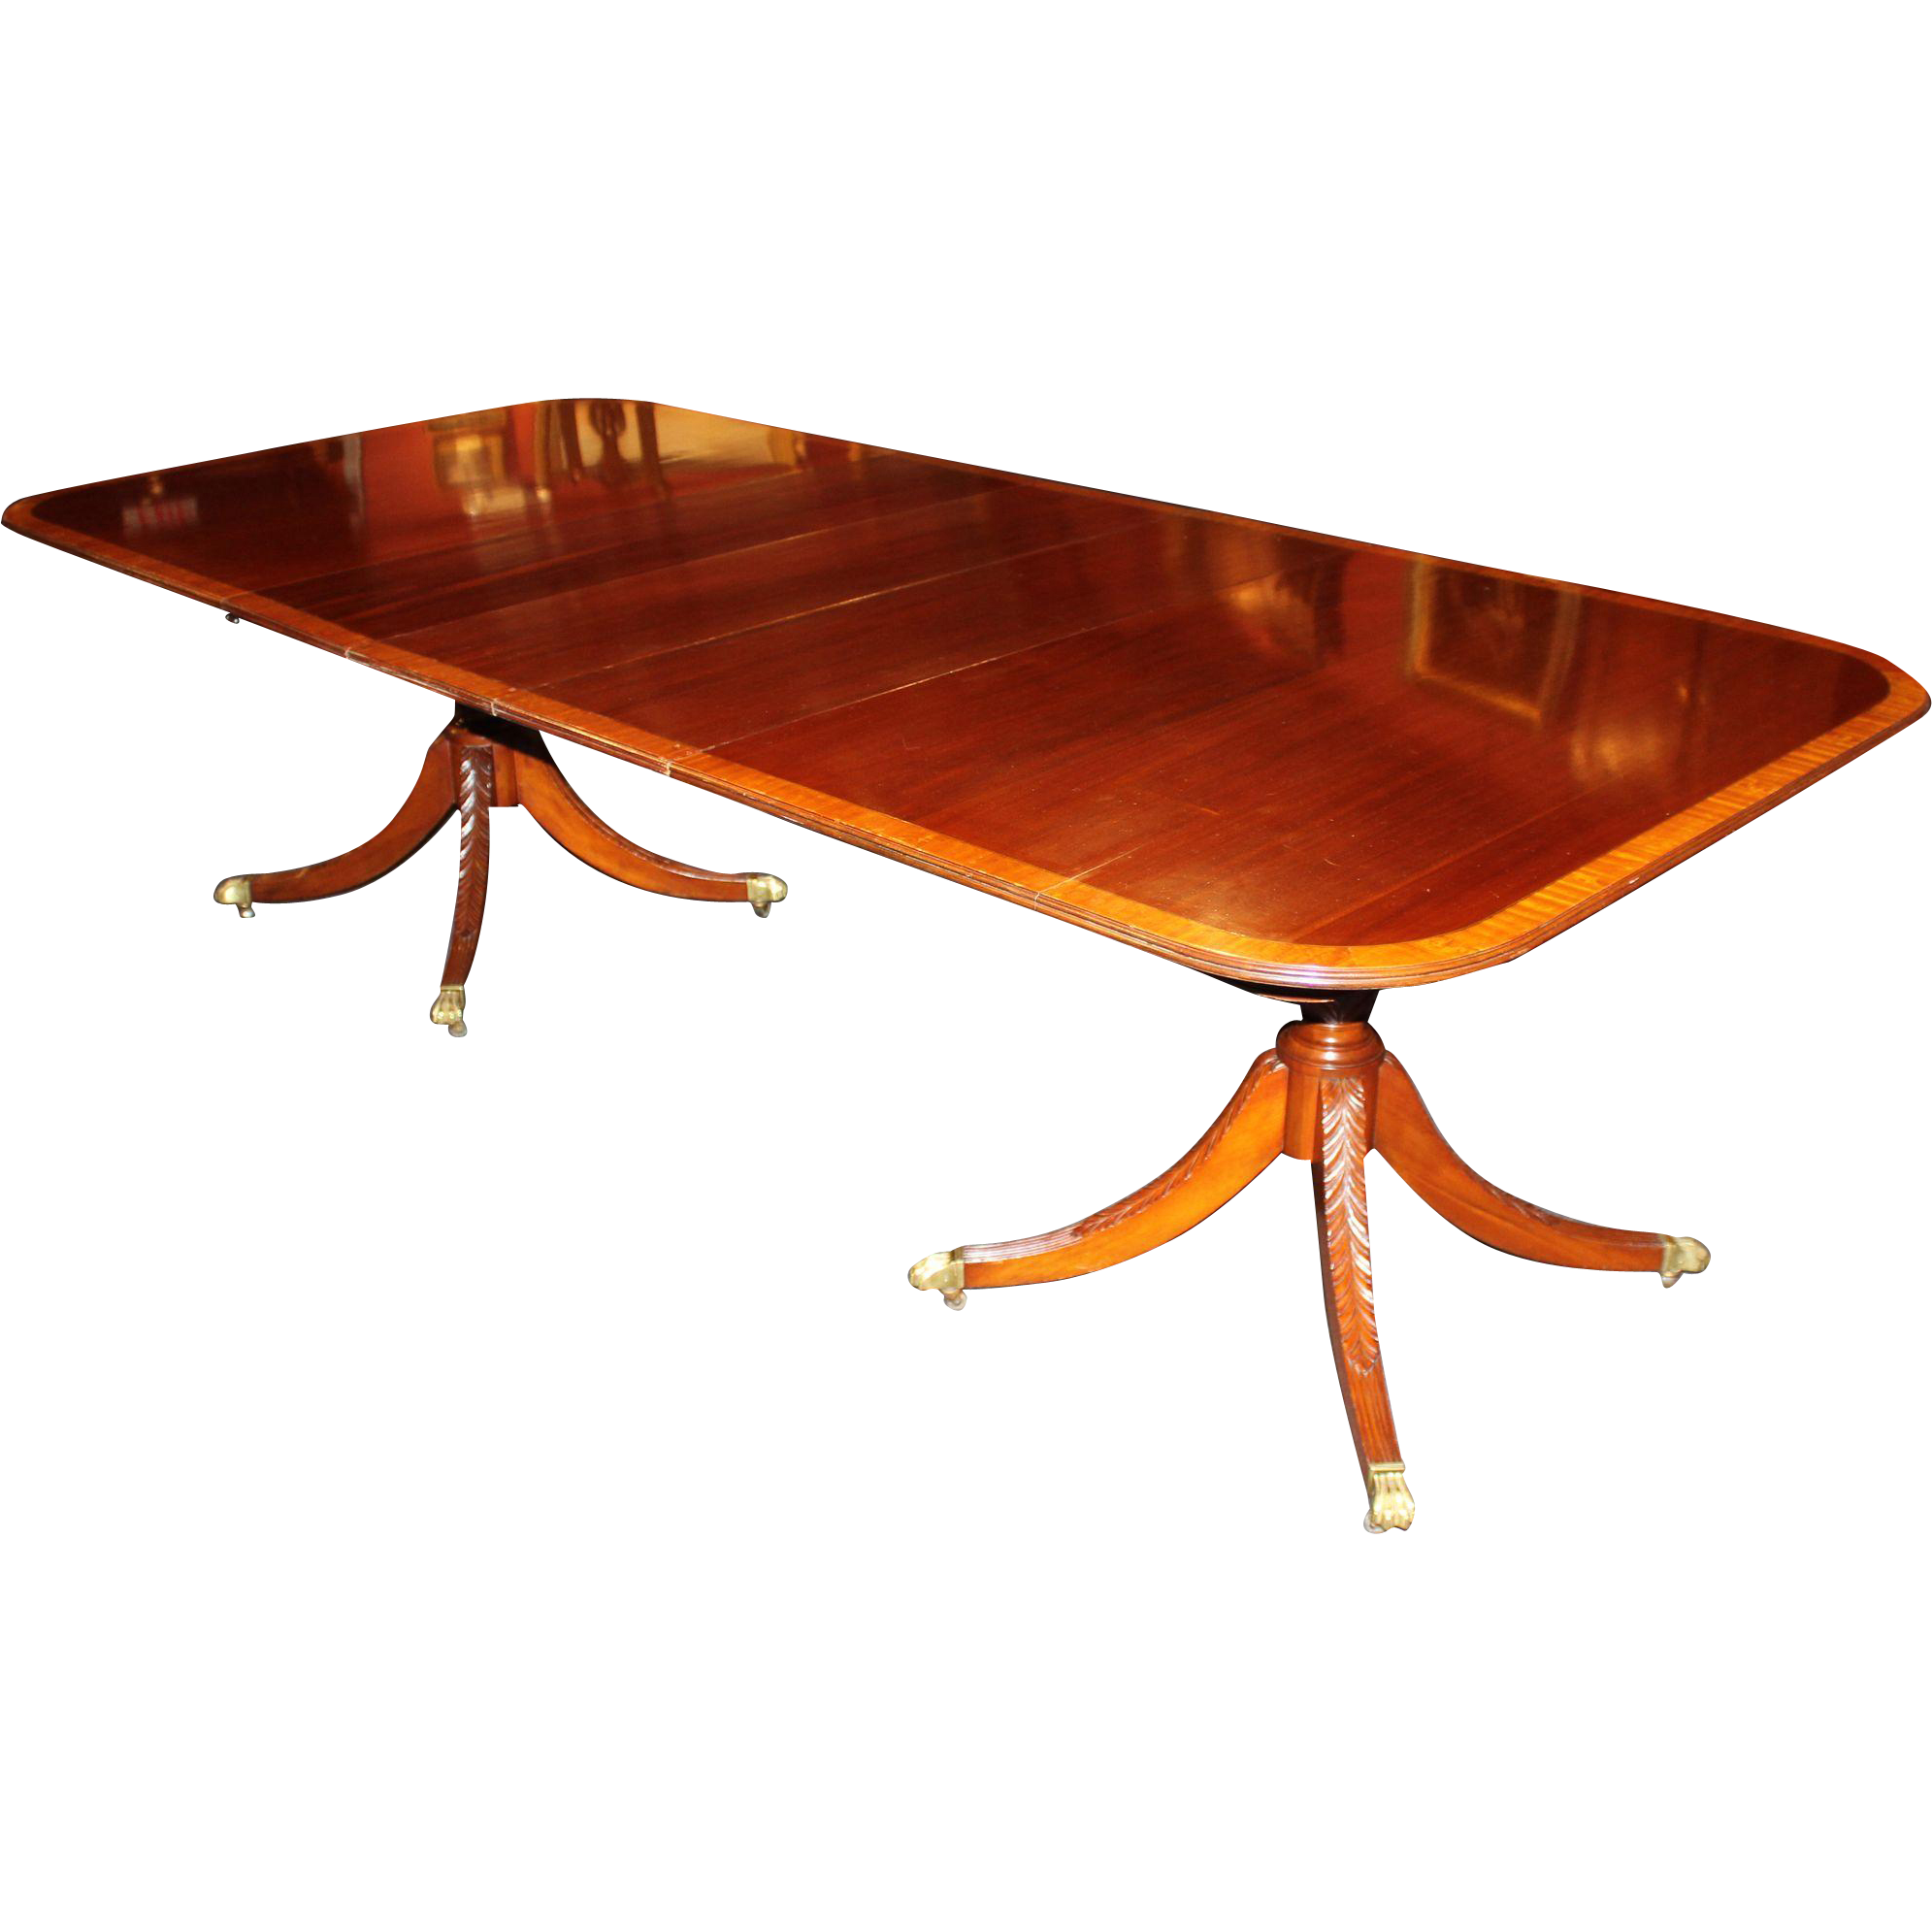 Satinwood Banded Mahogany Double Pedestal Dining Table : 45221L from www.rubylane.com size 1991 x 1991 png 1245kB